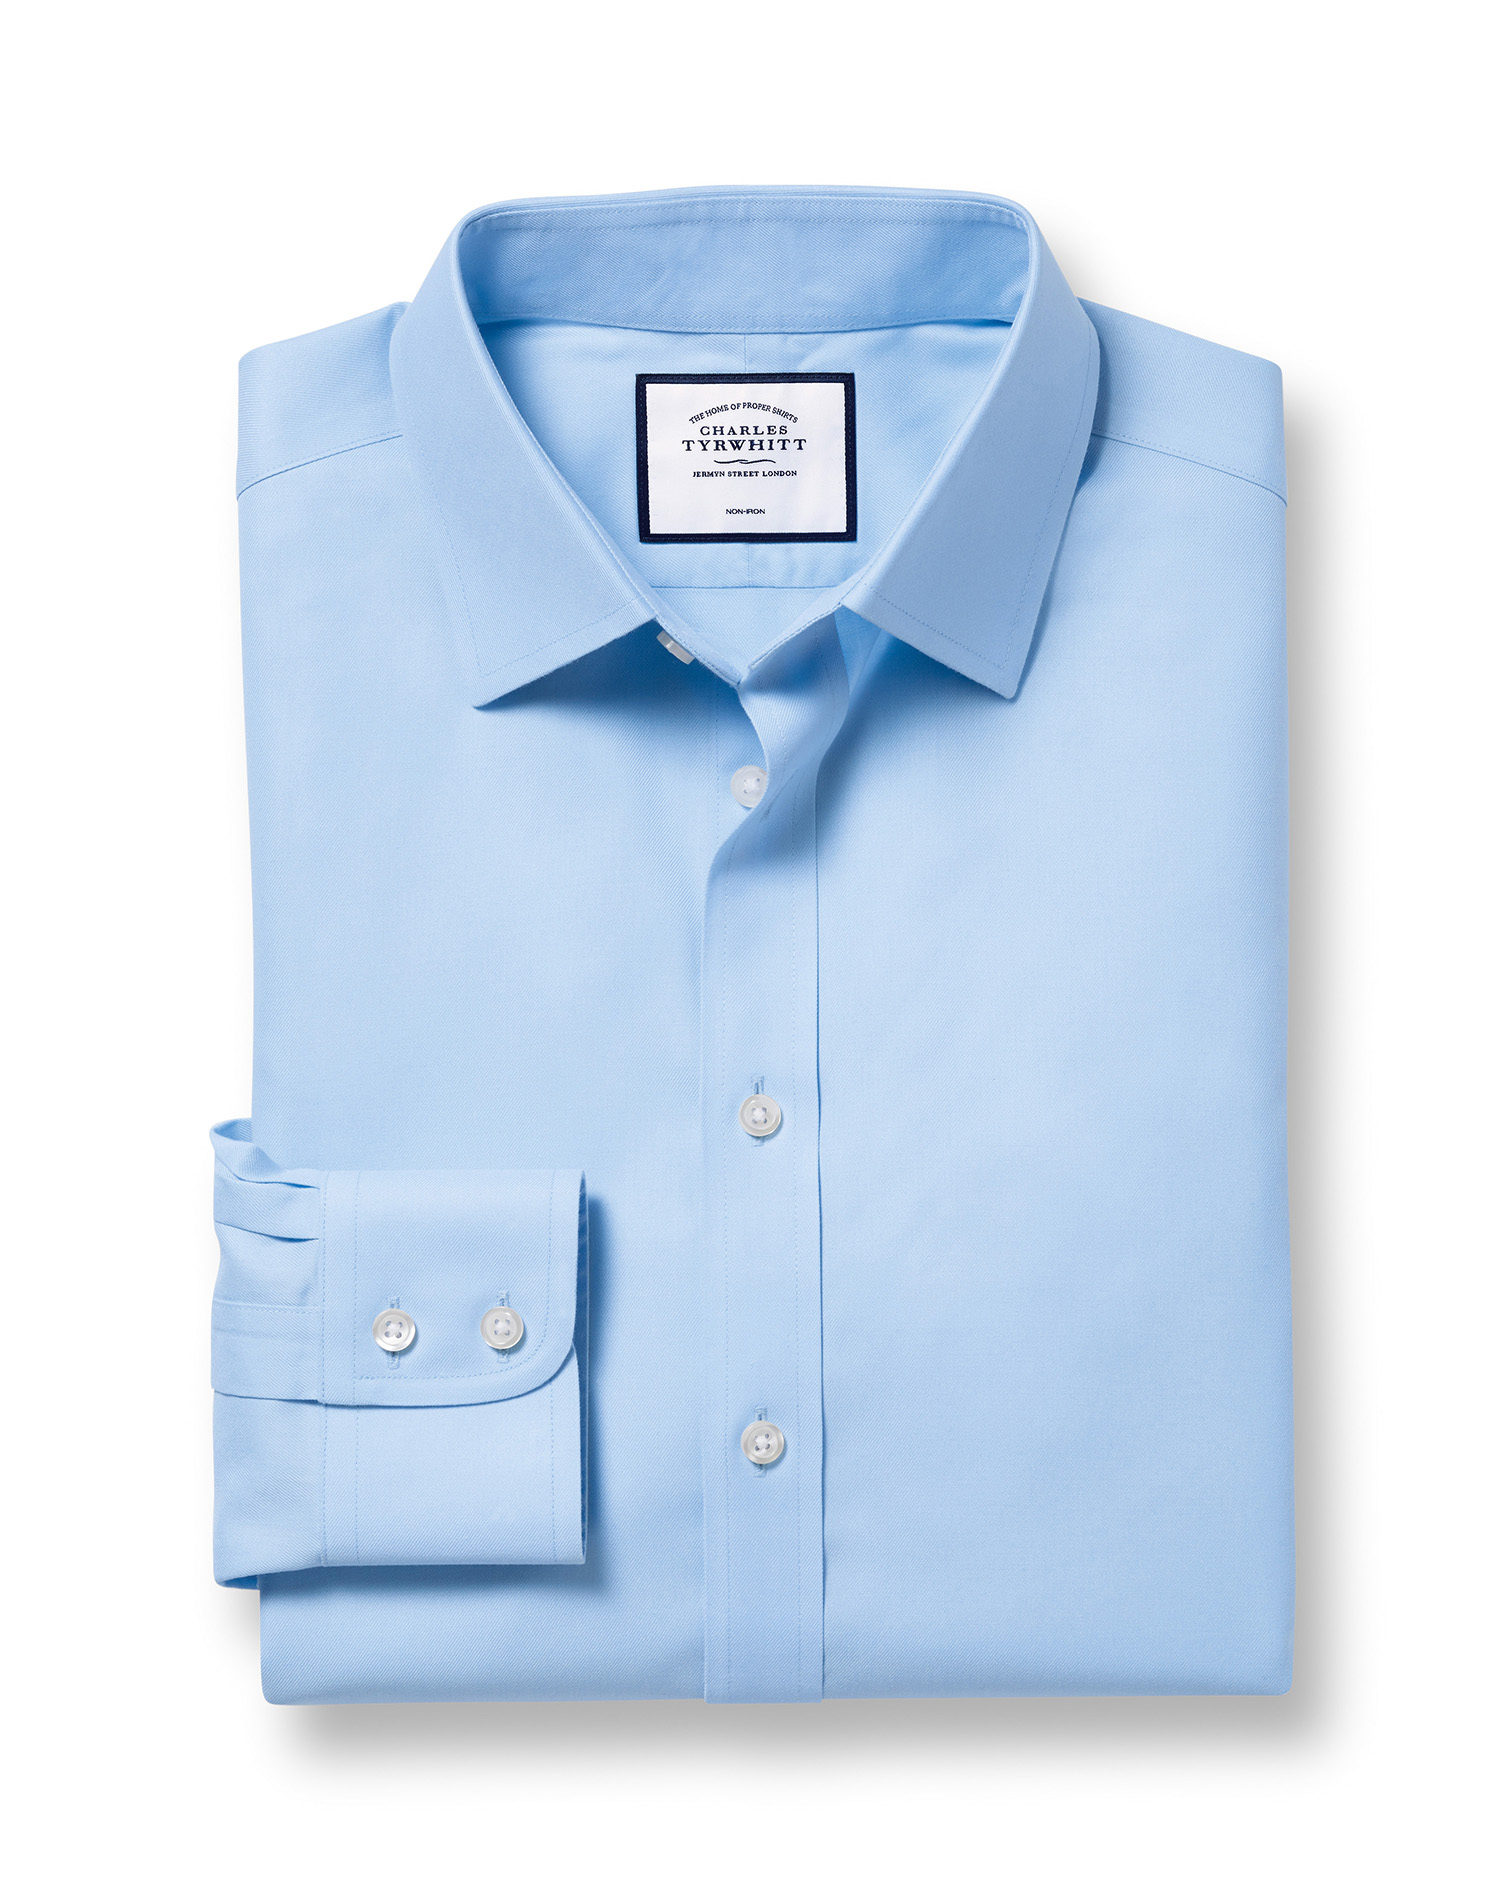 Extra Slim Fit Non-Iron Twill Sky Blue Cotton Formal Shirt Single Cuff Size 16.5/33 by Charles Tyrwh